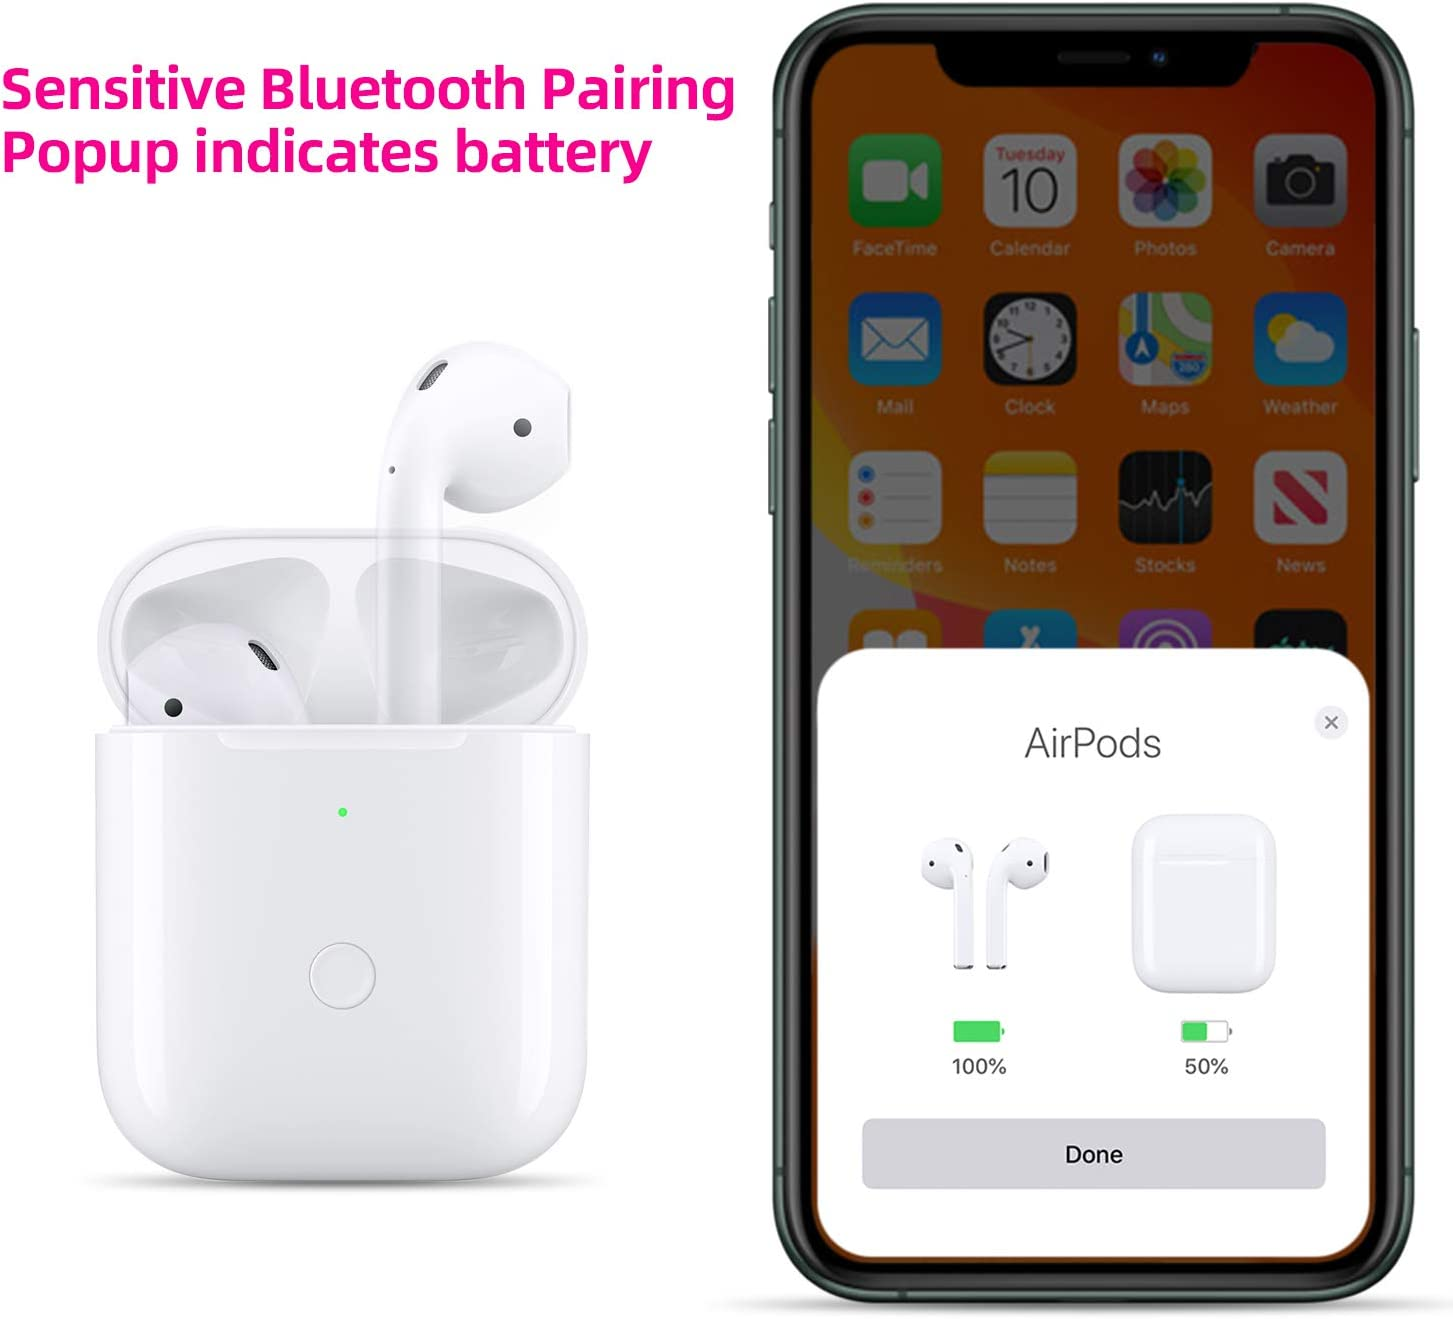 alpha-ene.co.jp Compatible for Air pods 1 2 with Bluetooth Sync ...